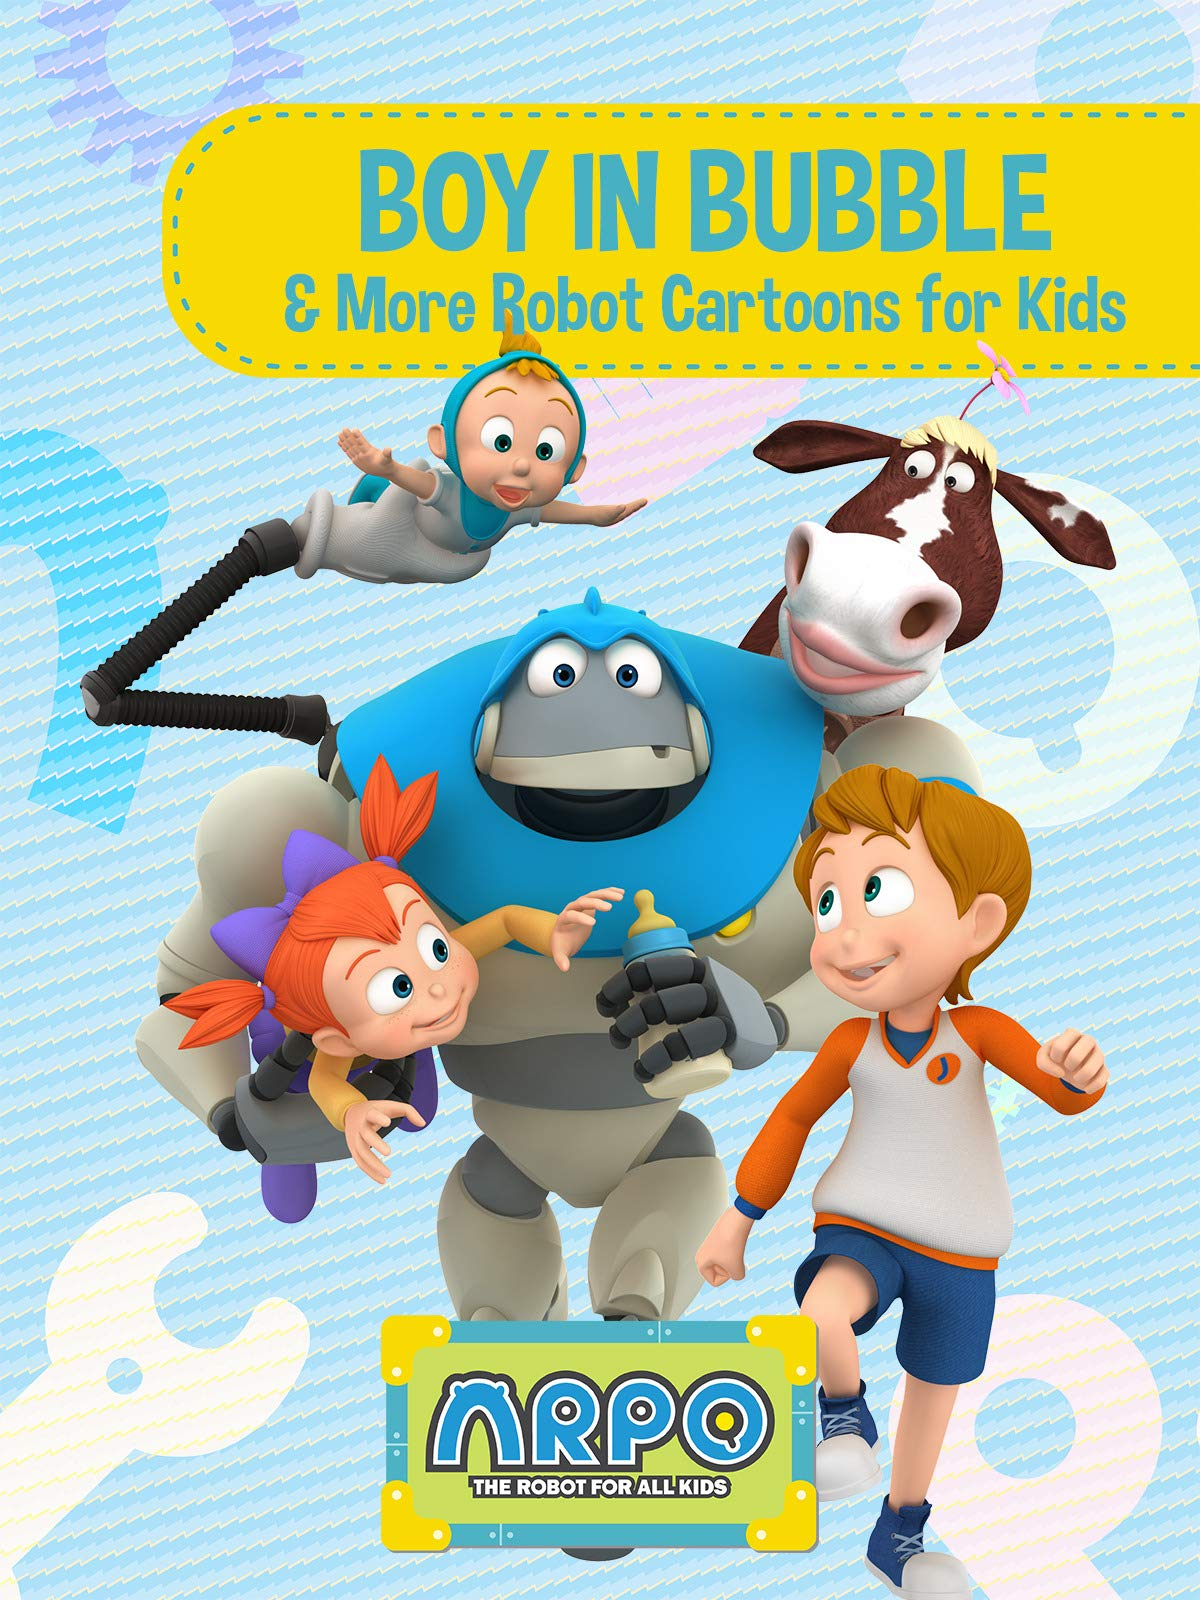 Arpo the Robot for All Kids  - Boy in Bubble & More Robot Cartoons for Kids on Amazon Prime Video UK